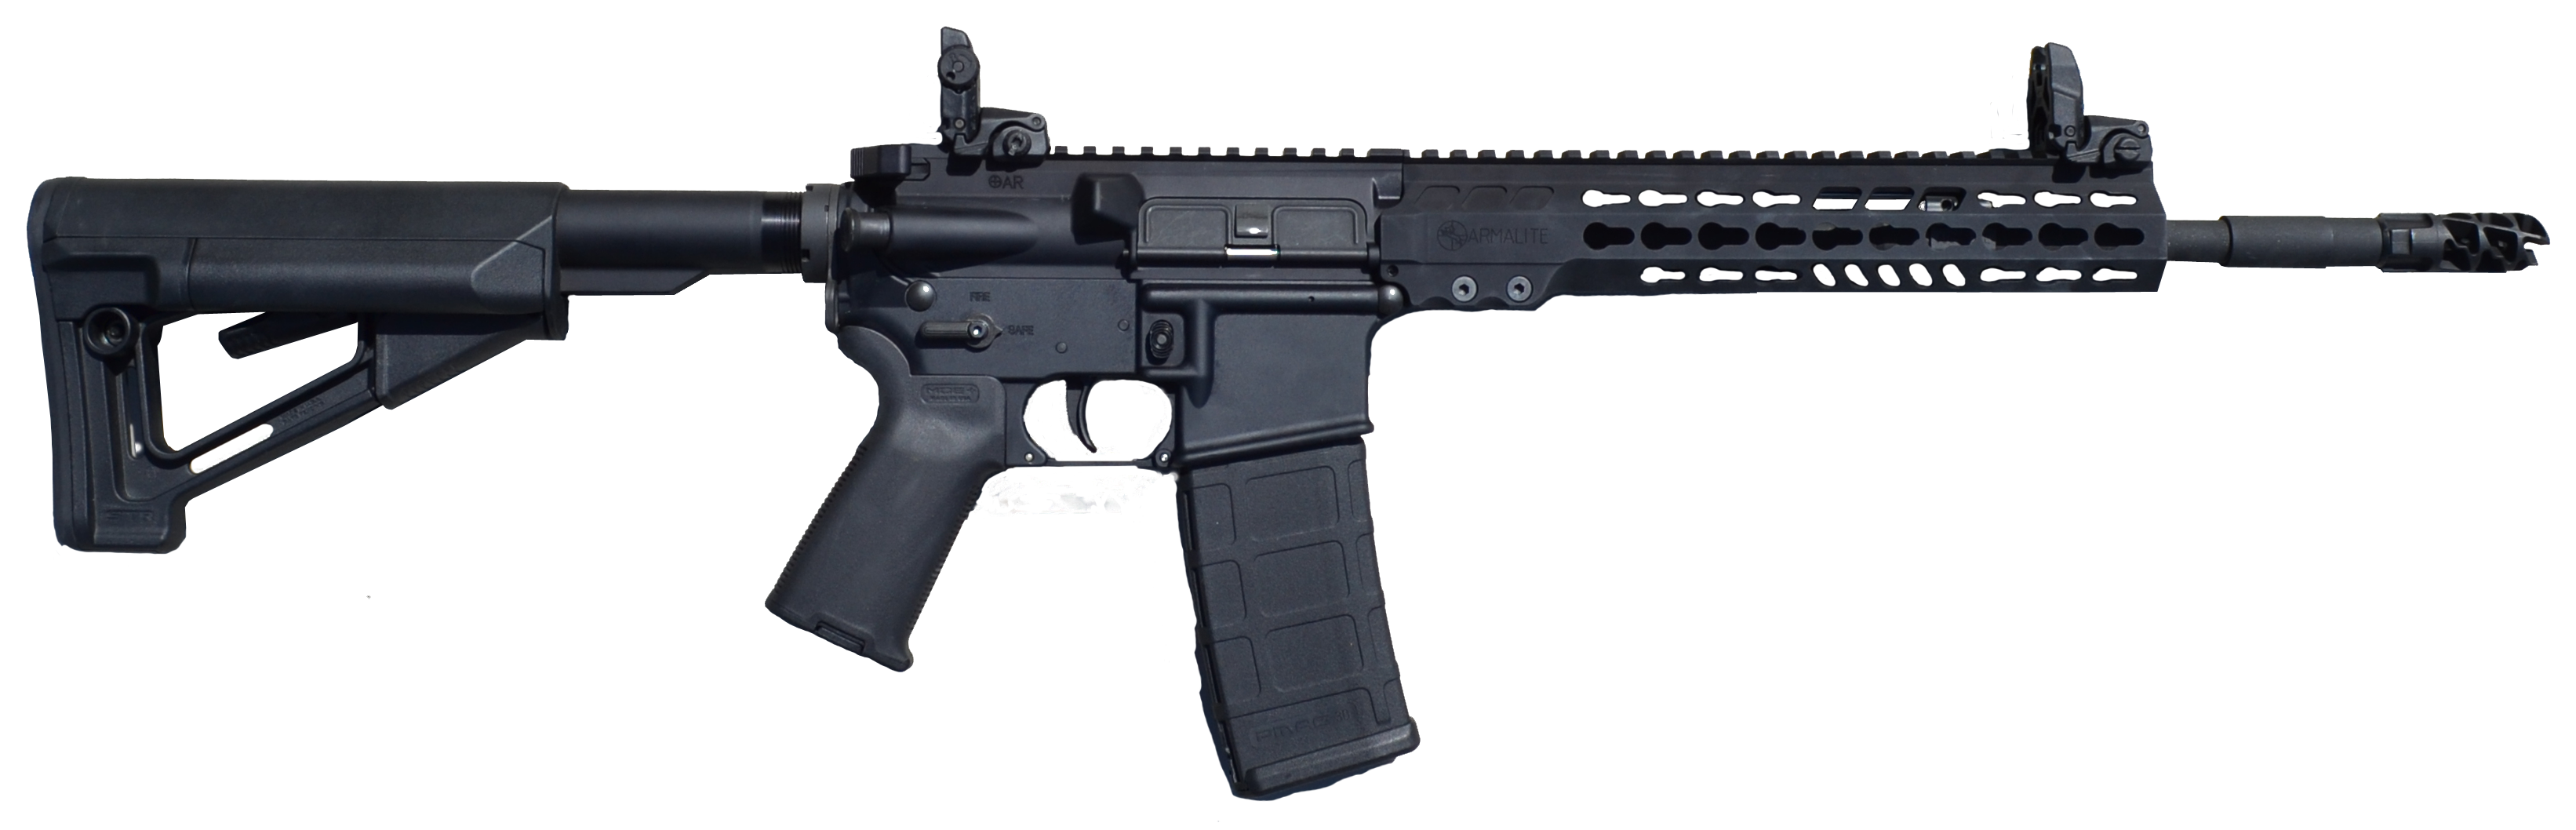 ArmaLite  M-15 Tactical Rifle Semi-Automatic 223 Remington/5.56 NATO 16